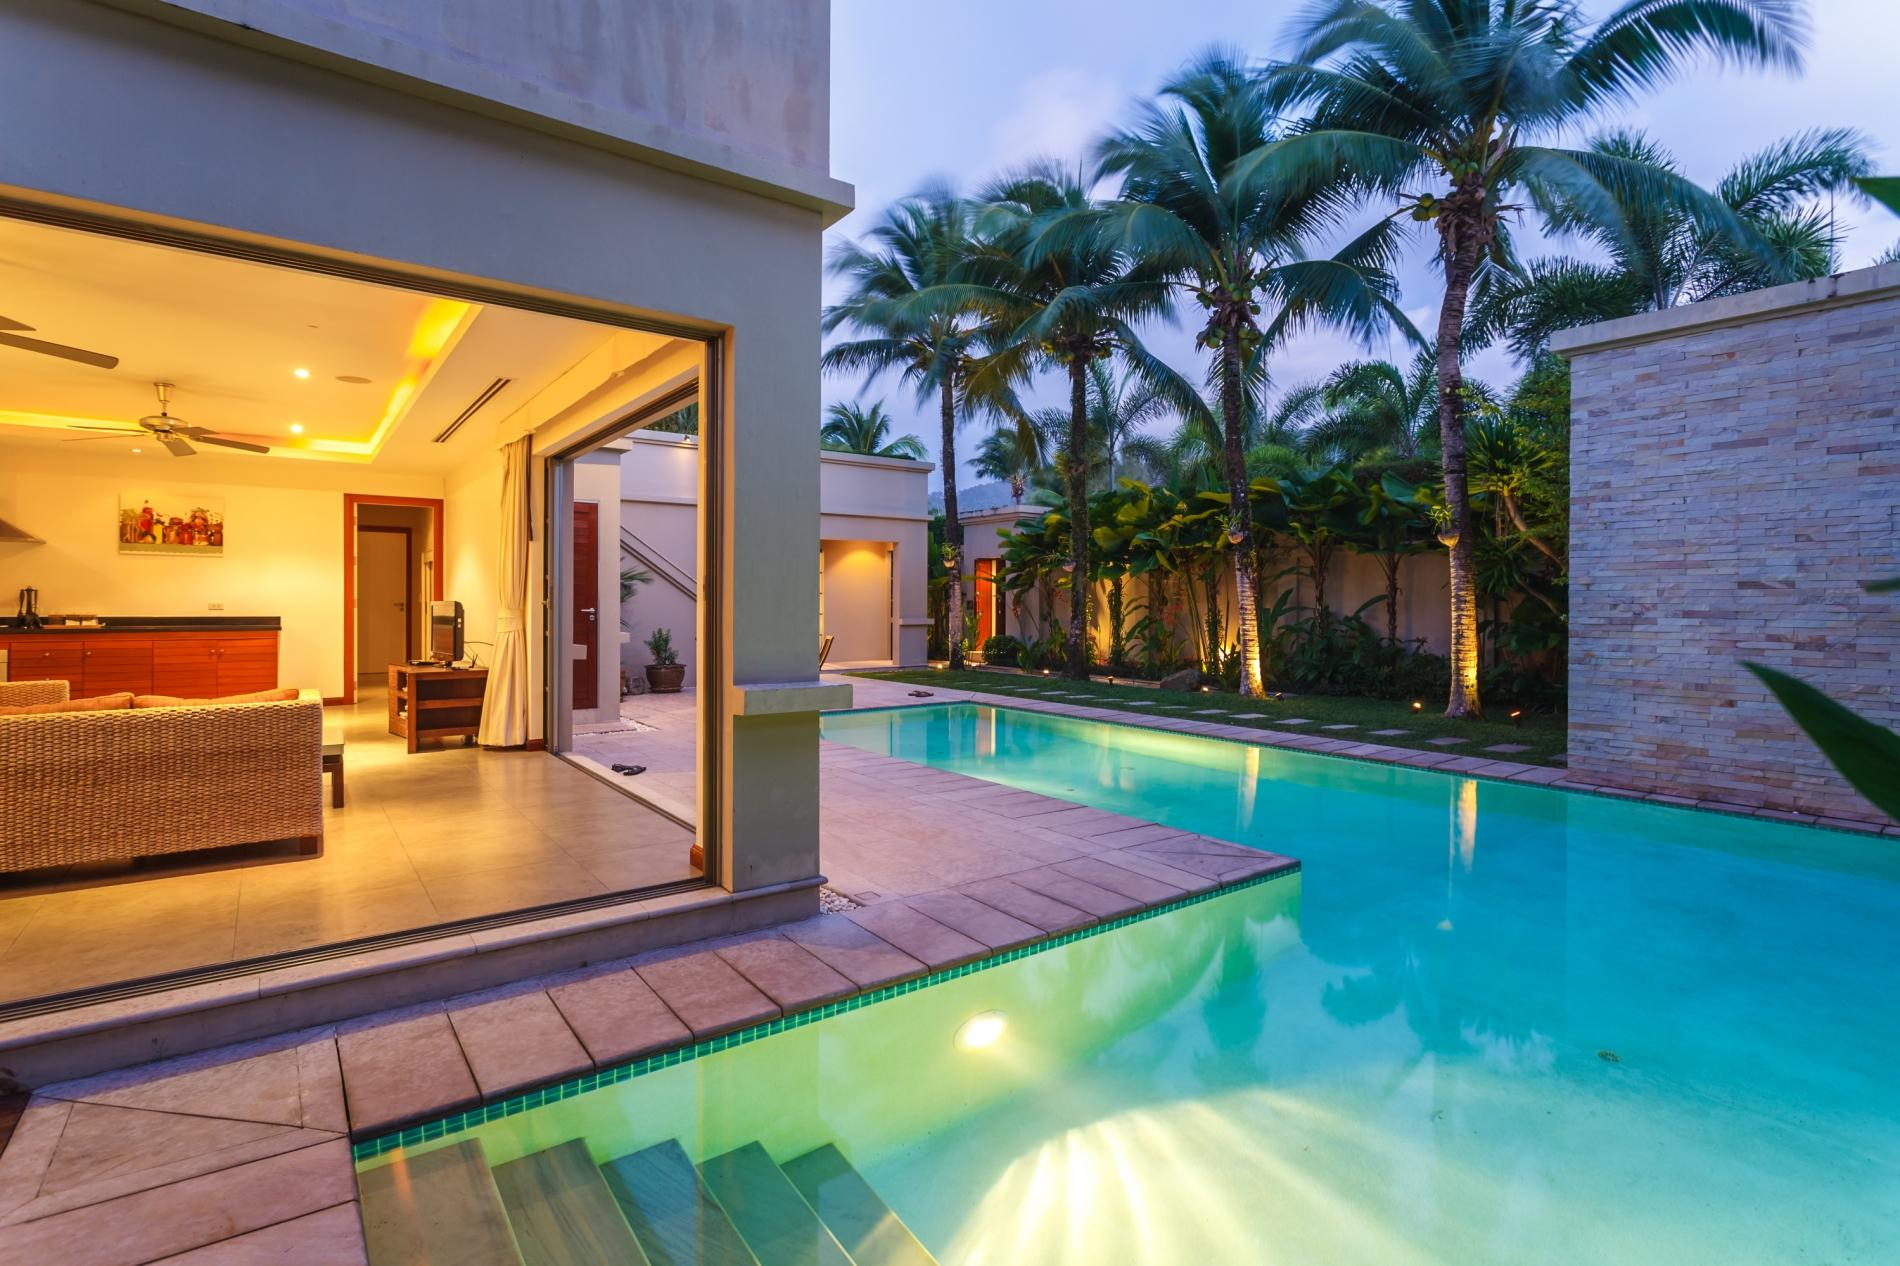 Apartment TR111 - Private pool villa in Bang Tao Residence - 3 bedrooms photo 16835540